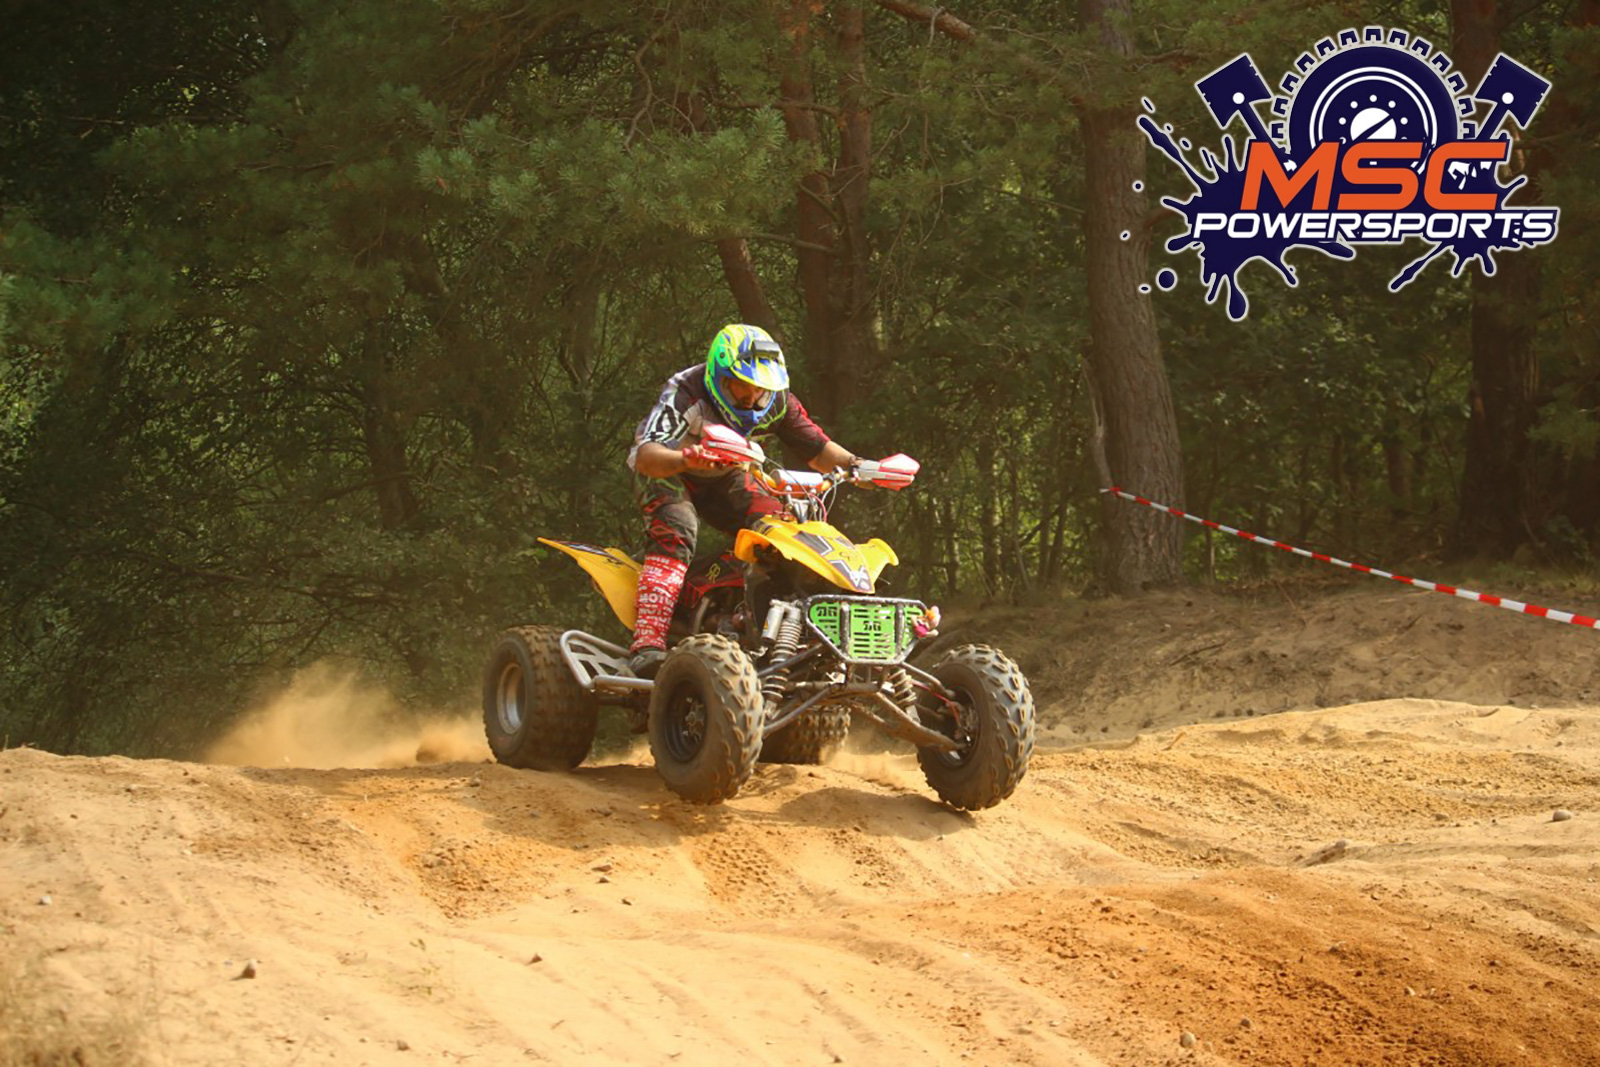 MSC Powersports - ATV Parts and Accessories